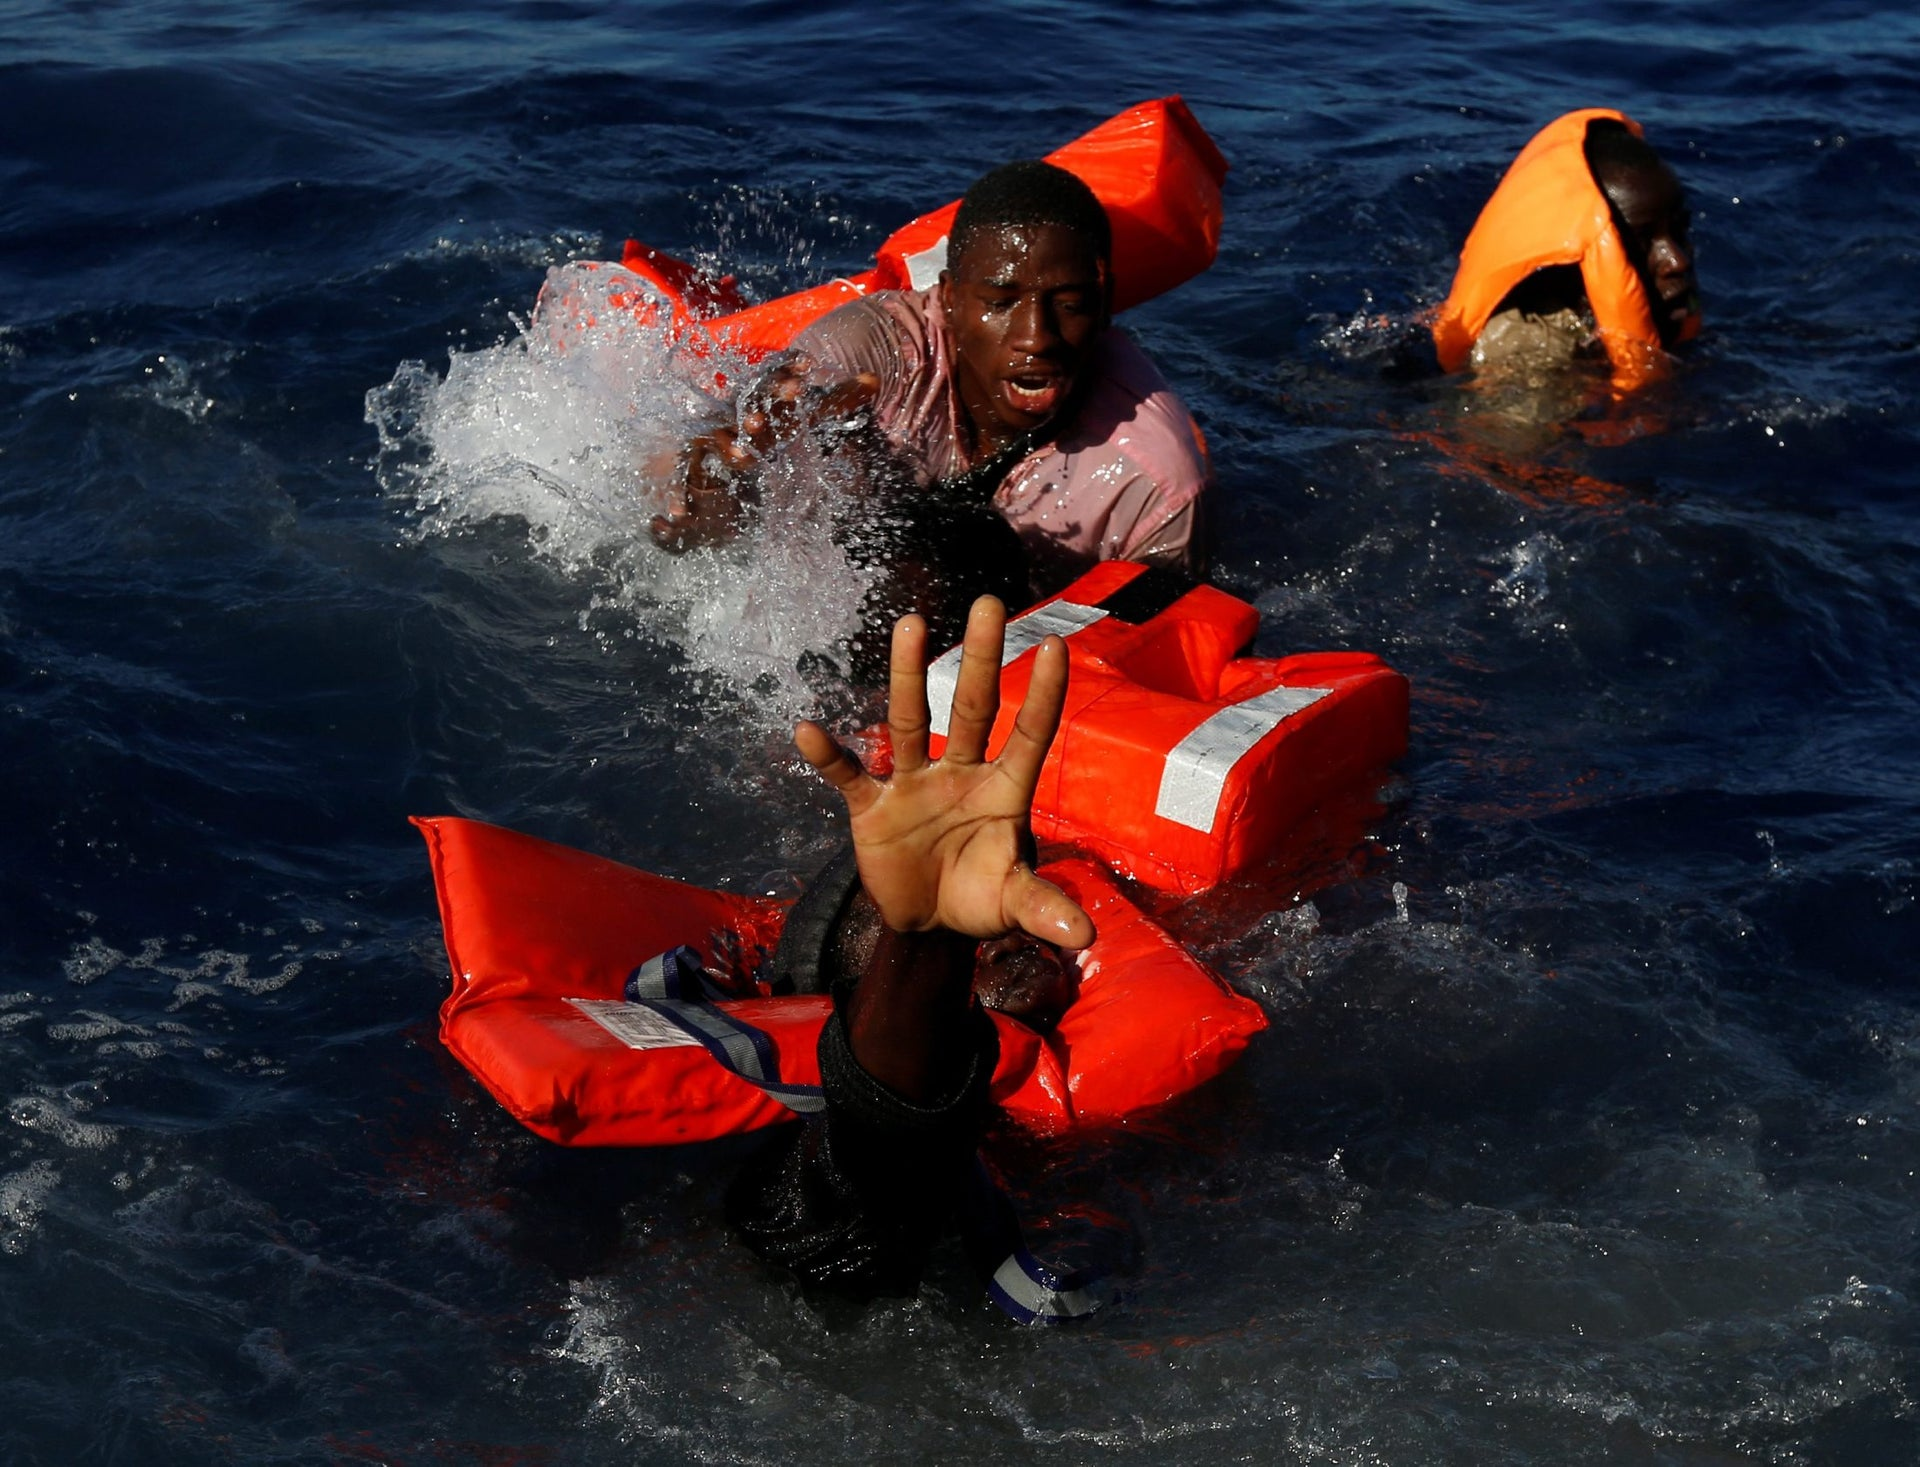 Migrants try to stay afloat after falling off their rubber dinghy during a rescue operation by the Malta-based NGO Migrant Offshore Aid Station (MOAS) ship in the central Mediterranean in international waters